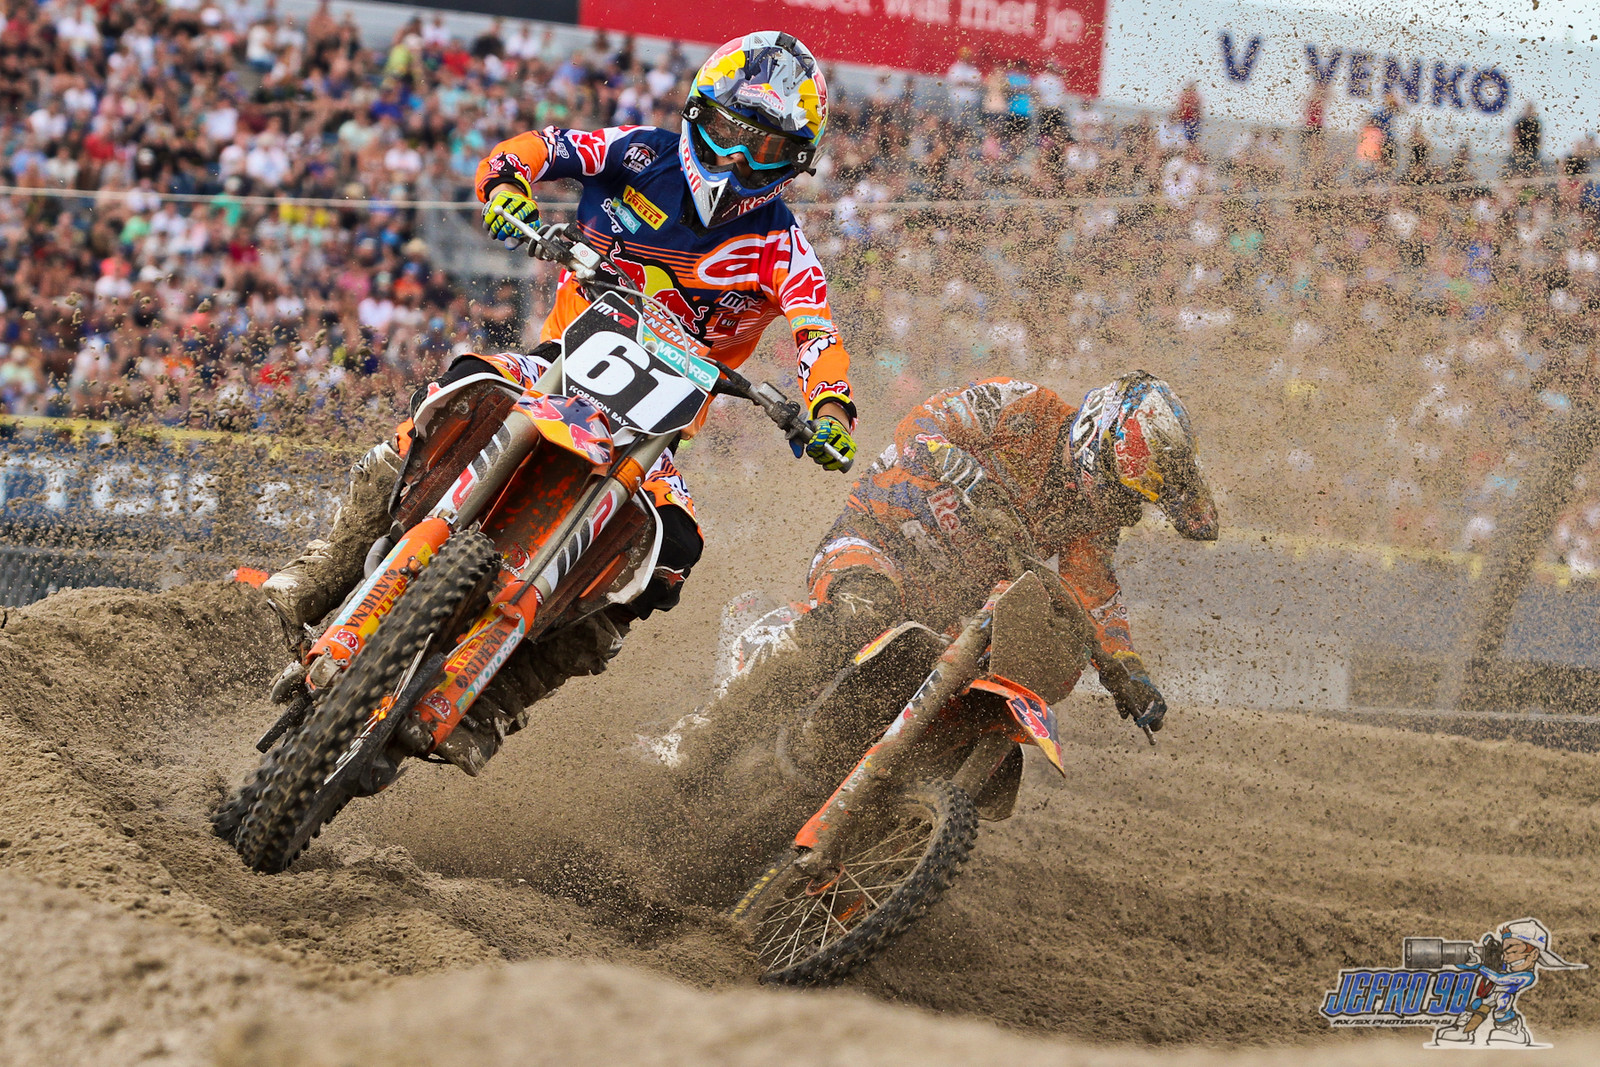 Jorge Prado & Jeffrey Herlings - Photo Gallery: MXGP of the Netherlands - Motocross Pictures - Vital MX